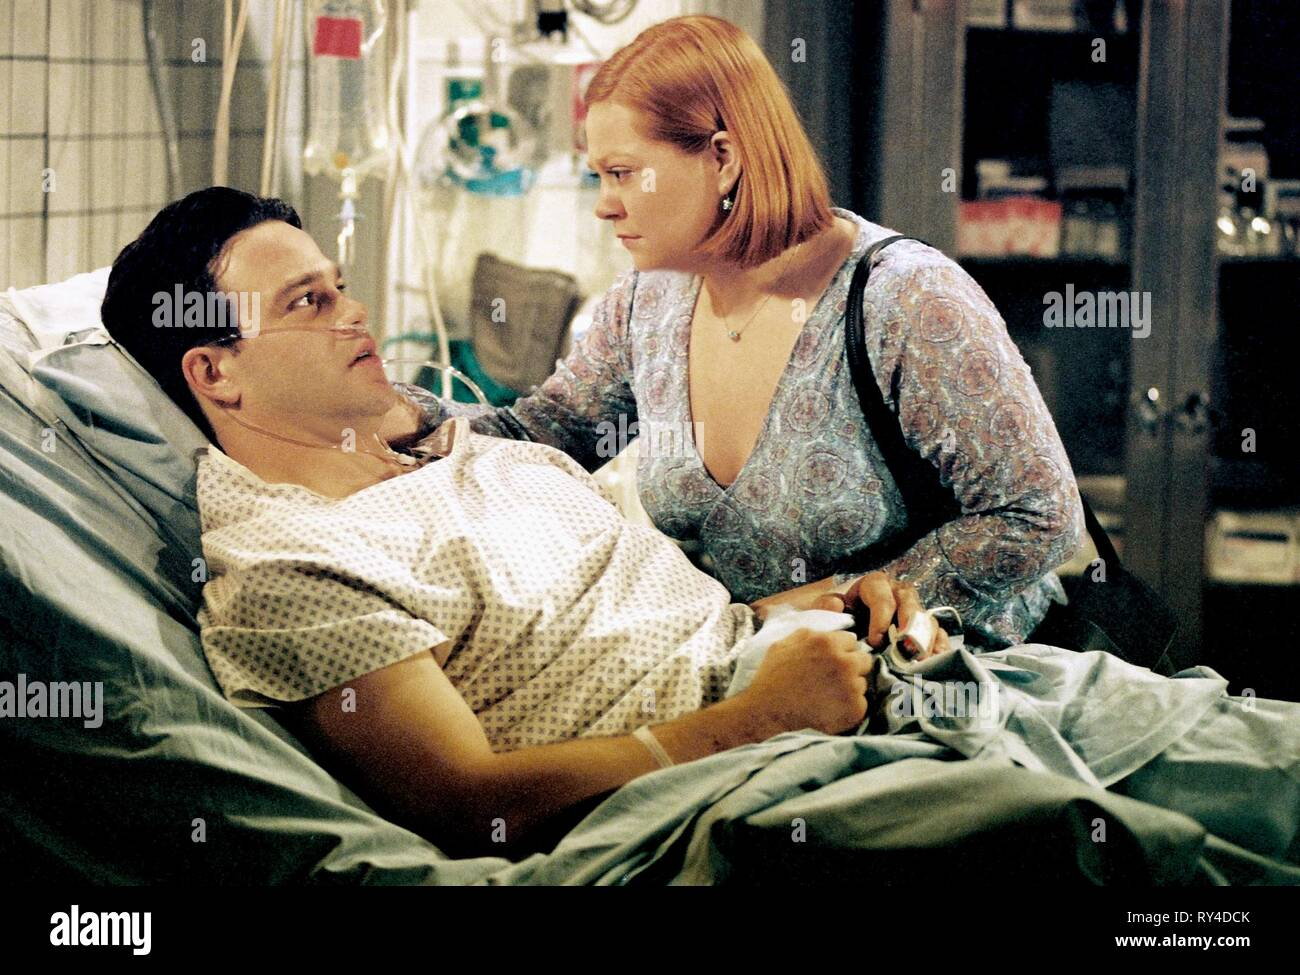 NATHANIEL MARSTON,KATHY BRIER, ONE LIFE TO LIVE, 2003 - Stock Image